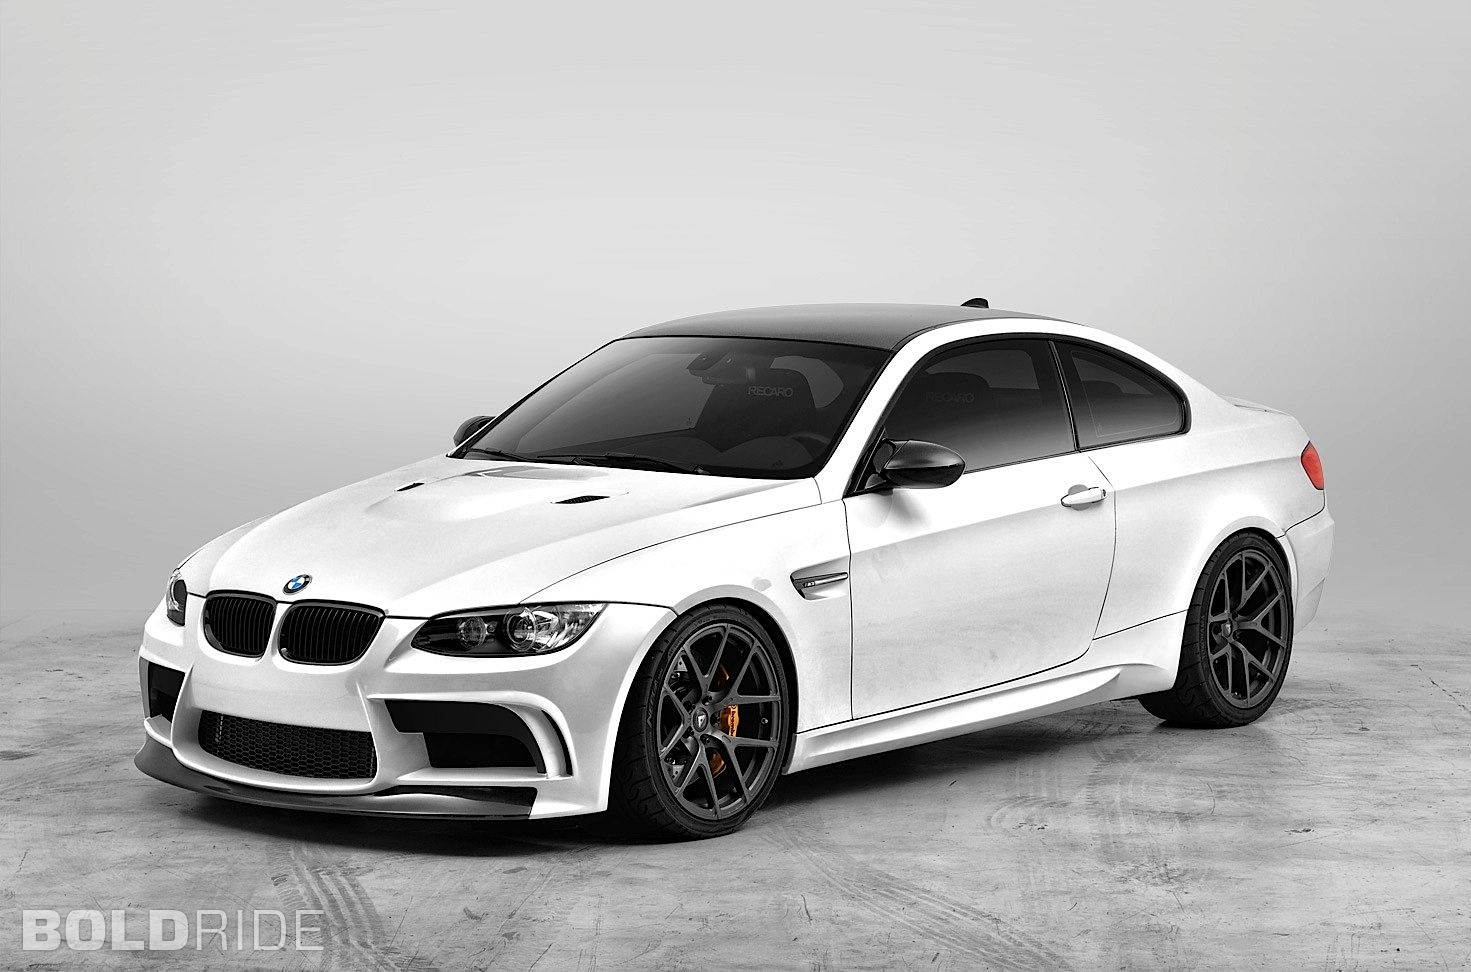 Bmw m3 download wallpapers hd bmw